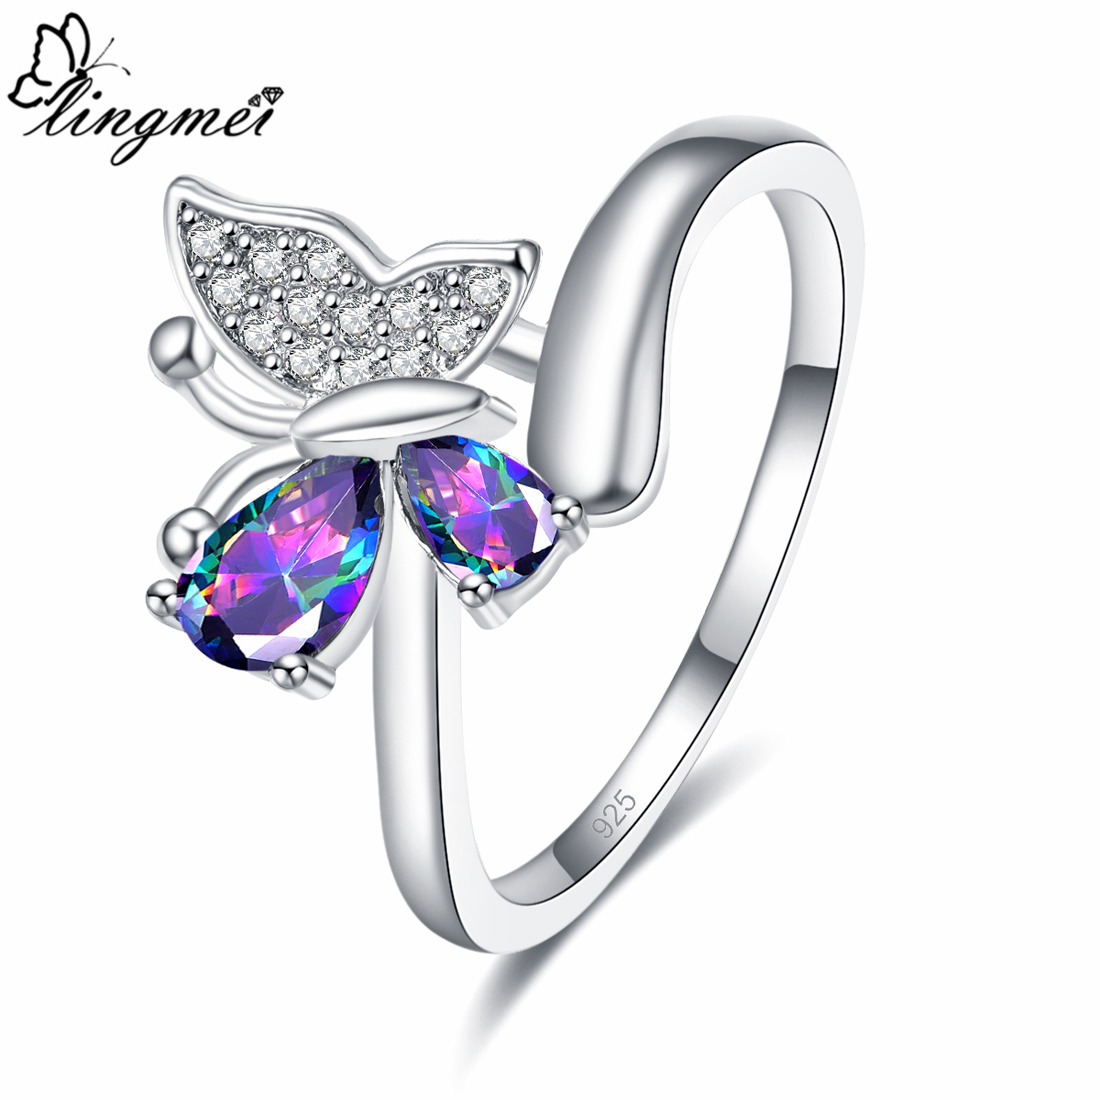 lingmei Drop Shipping Wedding Butterfly Jewelry Rainbow & Blue White Cubic Zircon Silver 925 Ring Size 6 7 8 9 Party Gifts